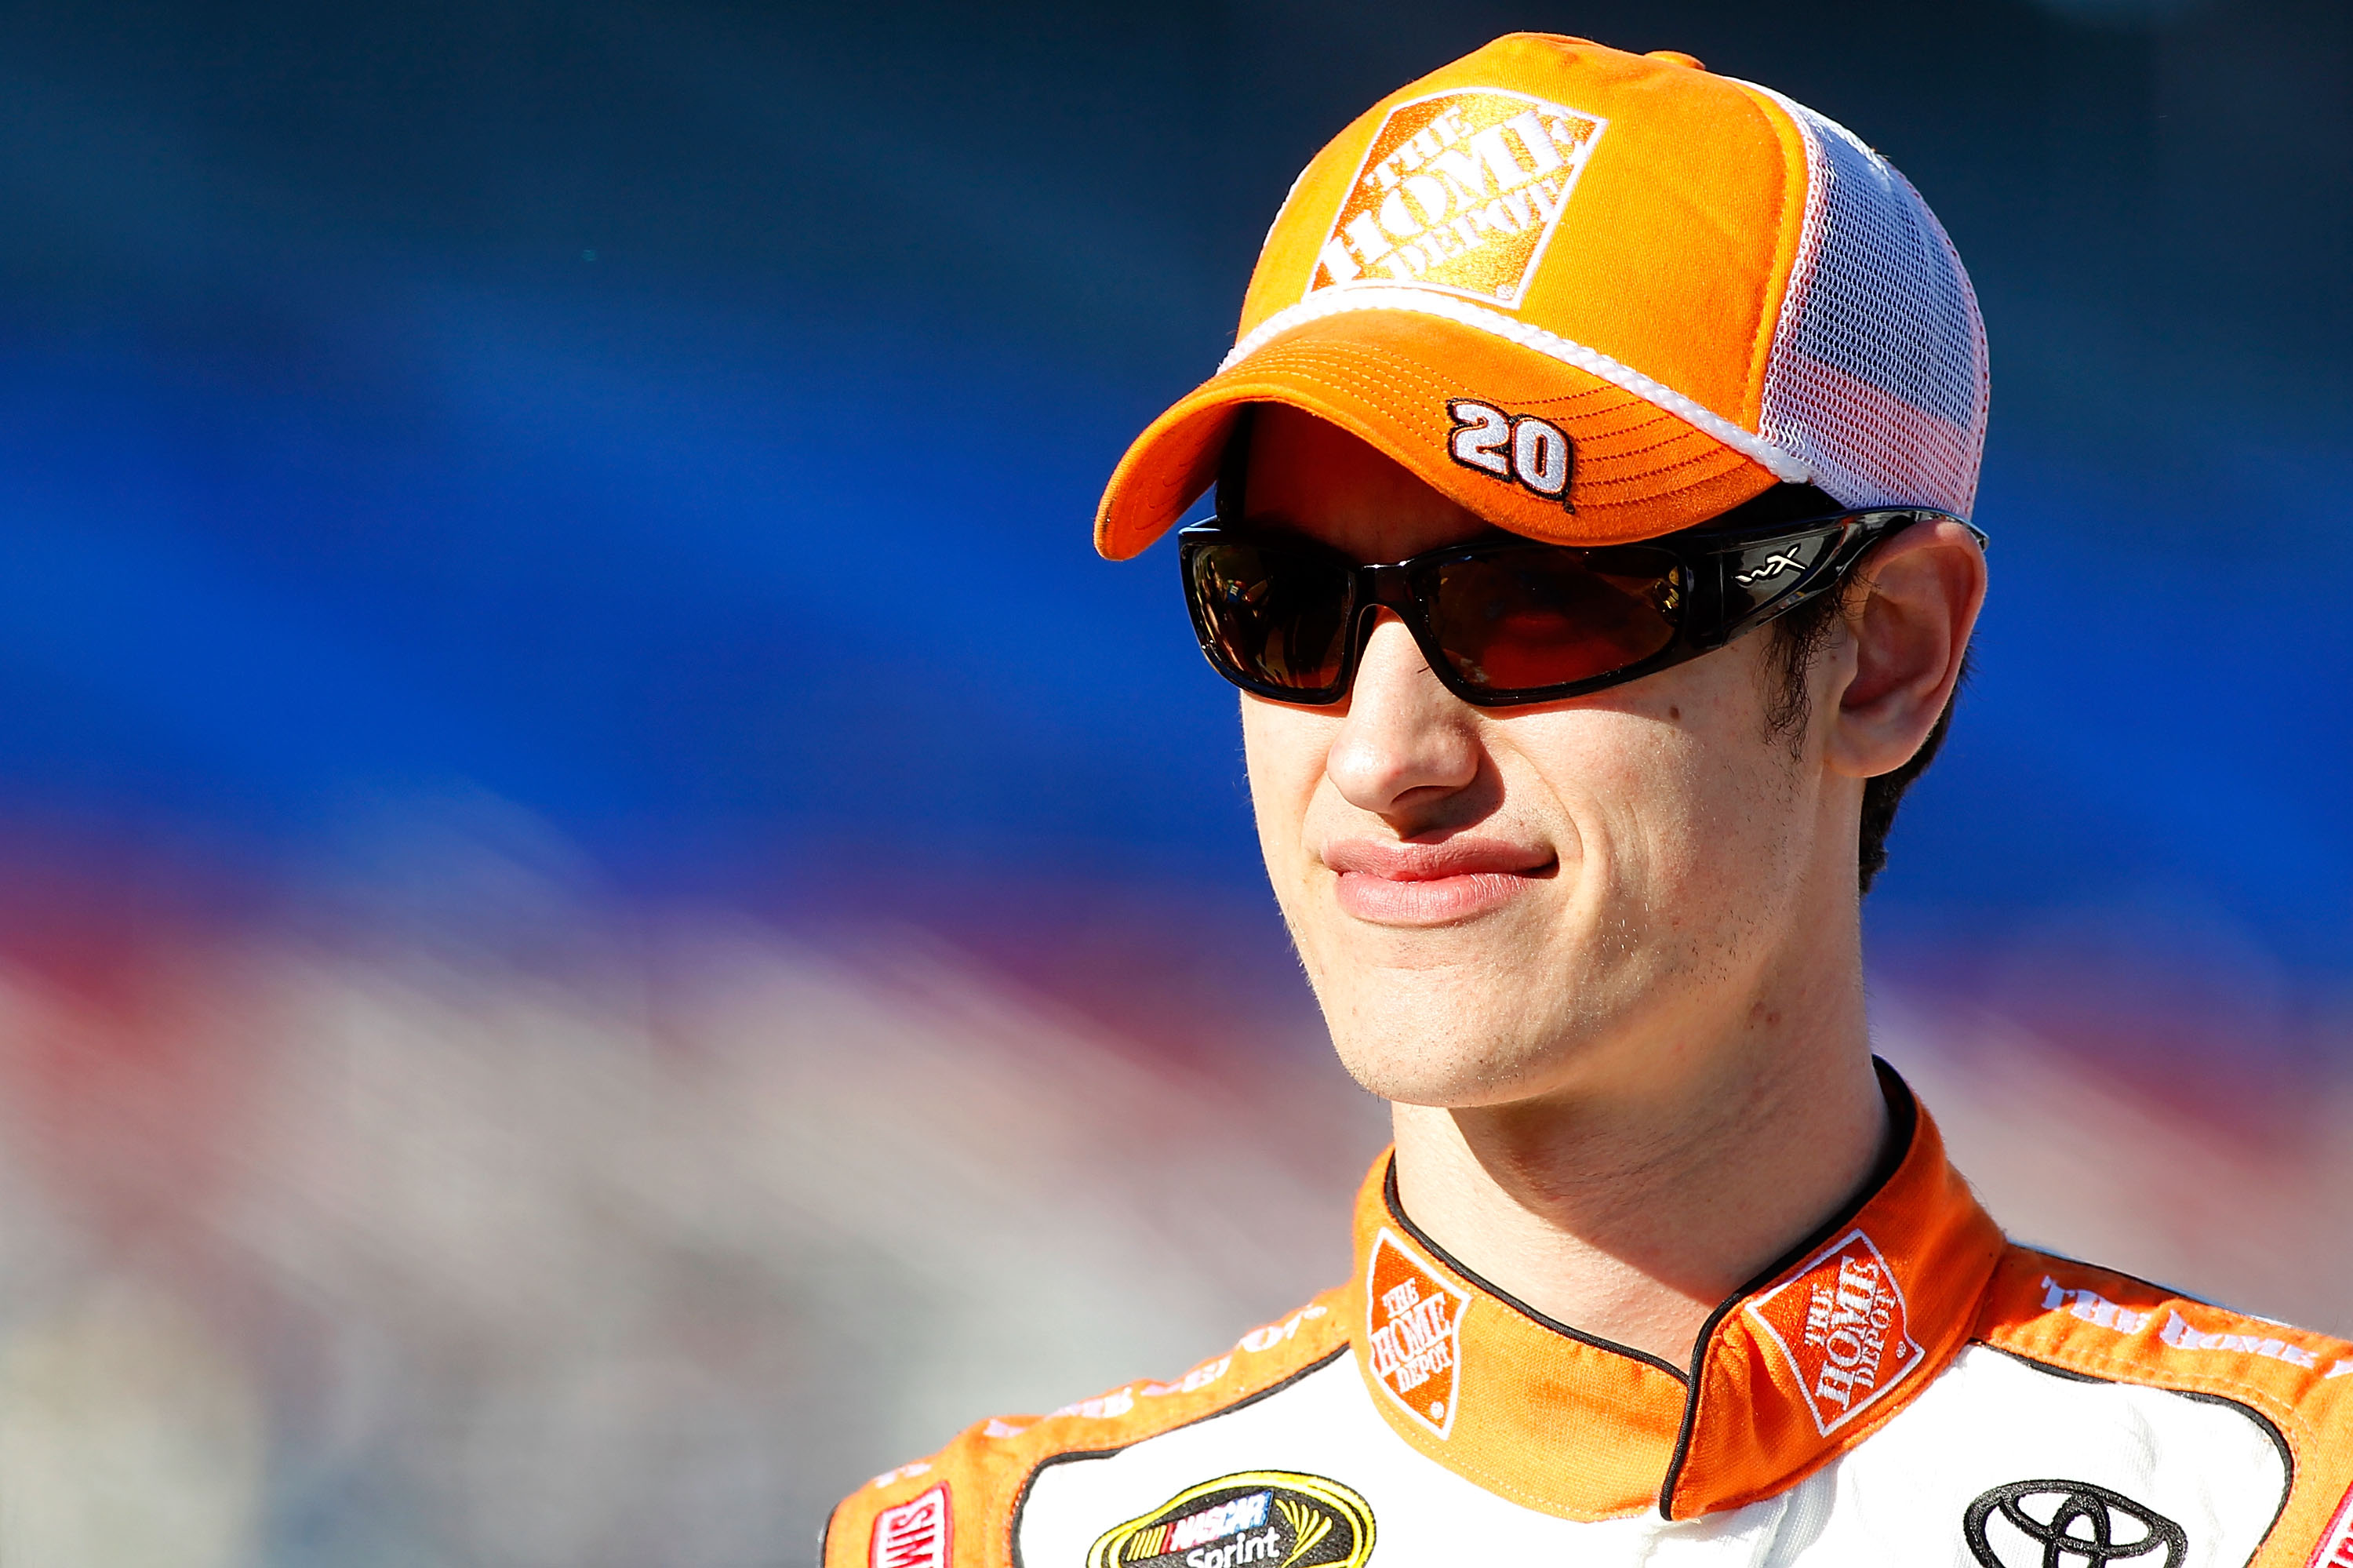 FORT WORTH, TX - NOVEMBER 05:  Joey Logano, driver of the #20 Home Depot Toyota, stands on the grid during qualifying for the NASCAR Sprint Cup Series AAA Texas 500 at Texas Motor Speedway on November 5, 2010 in Fort Worth, Texas.  (Photo by Todd Warshaw/